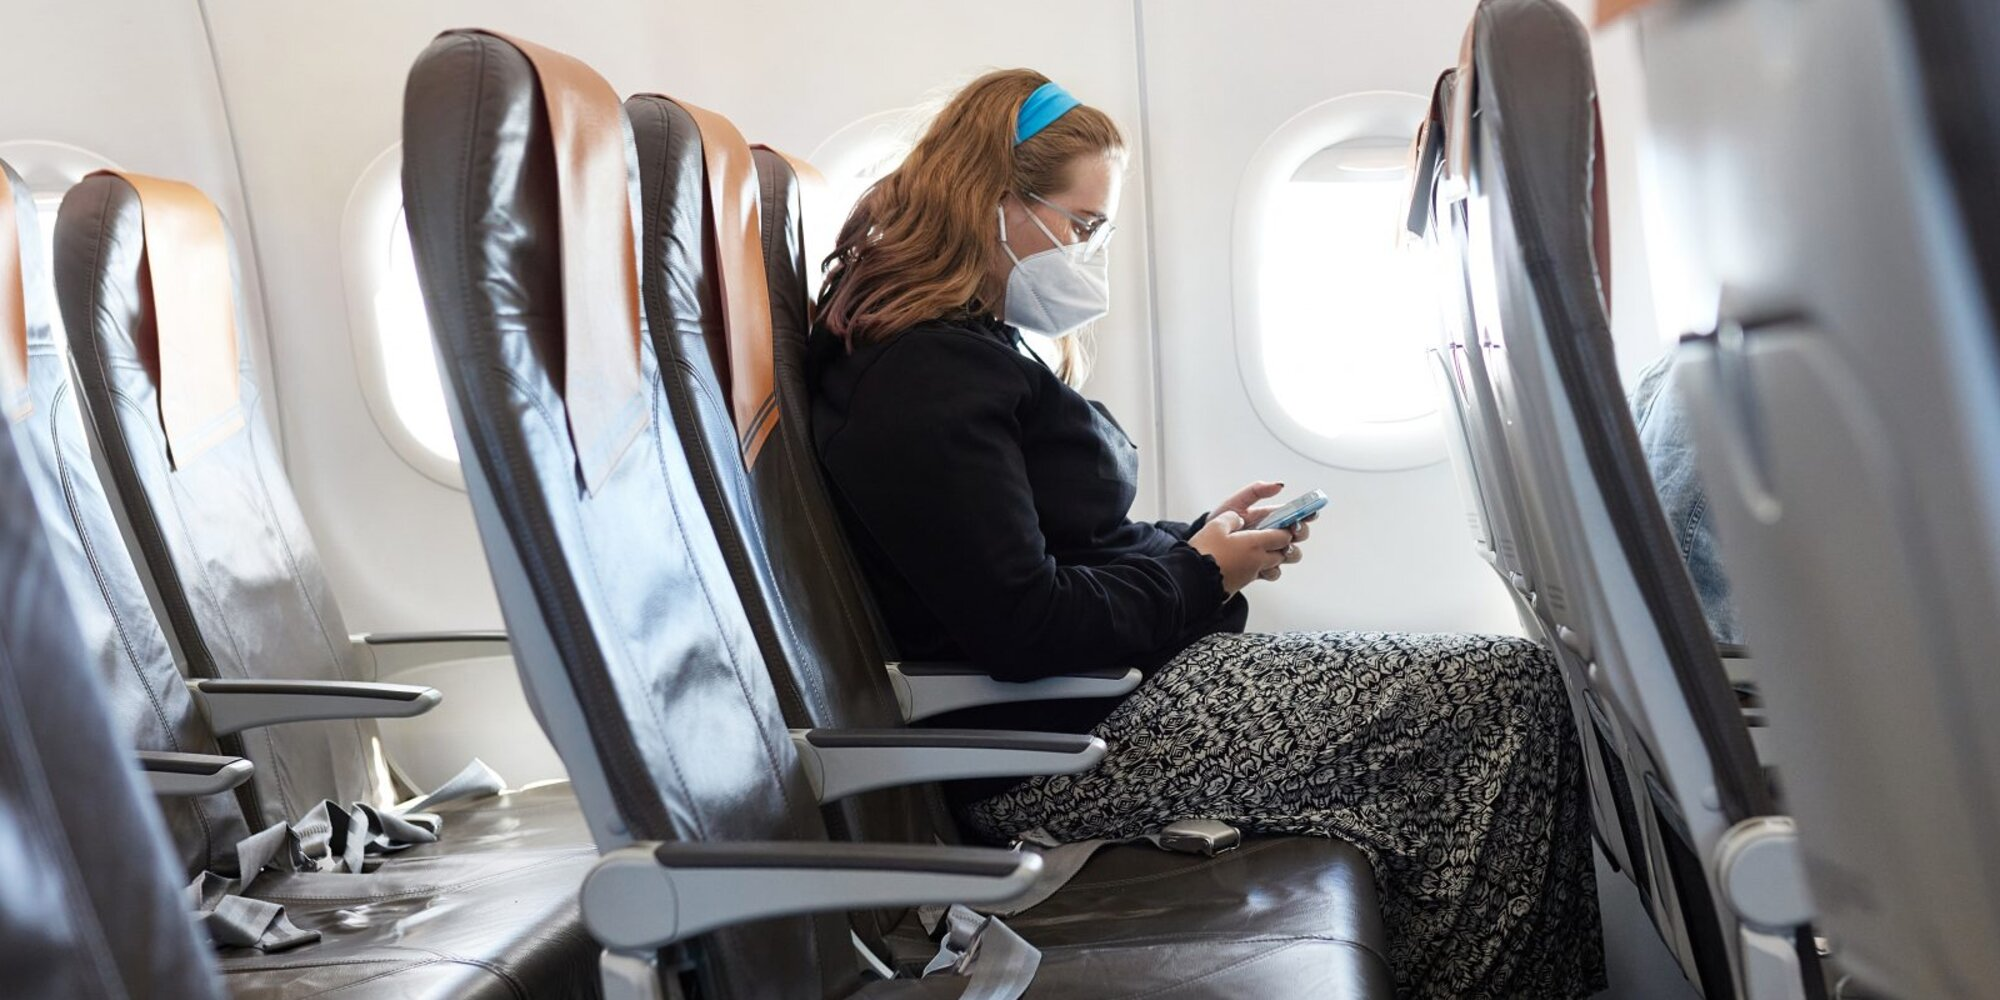 Leaving the Middle Seat Empty on Airplanes Can Reduce COVID Risk by Up to 57%, CDC Study Finds